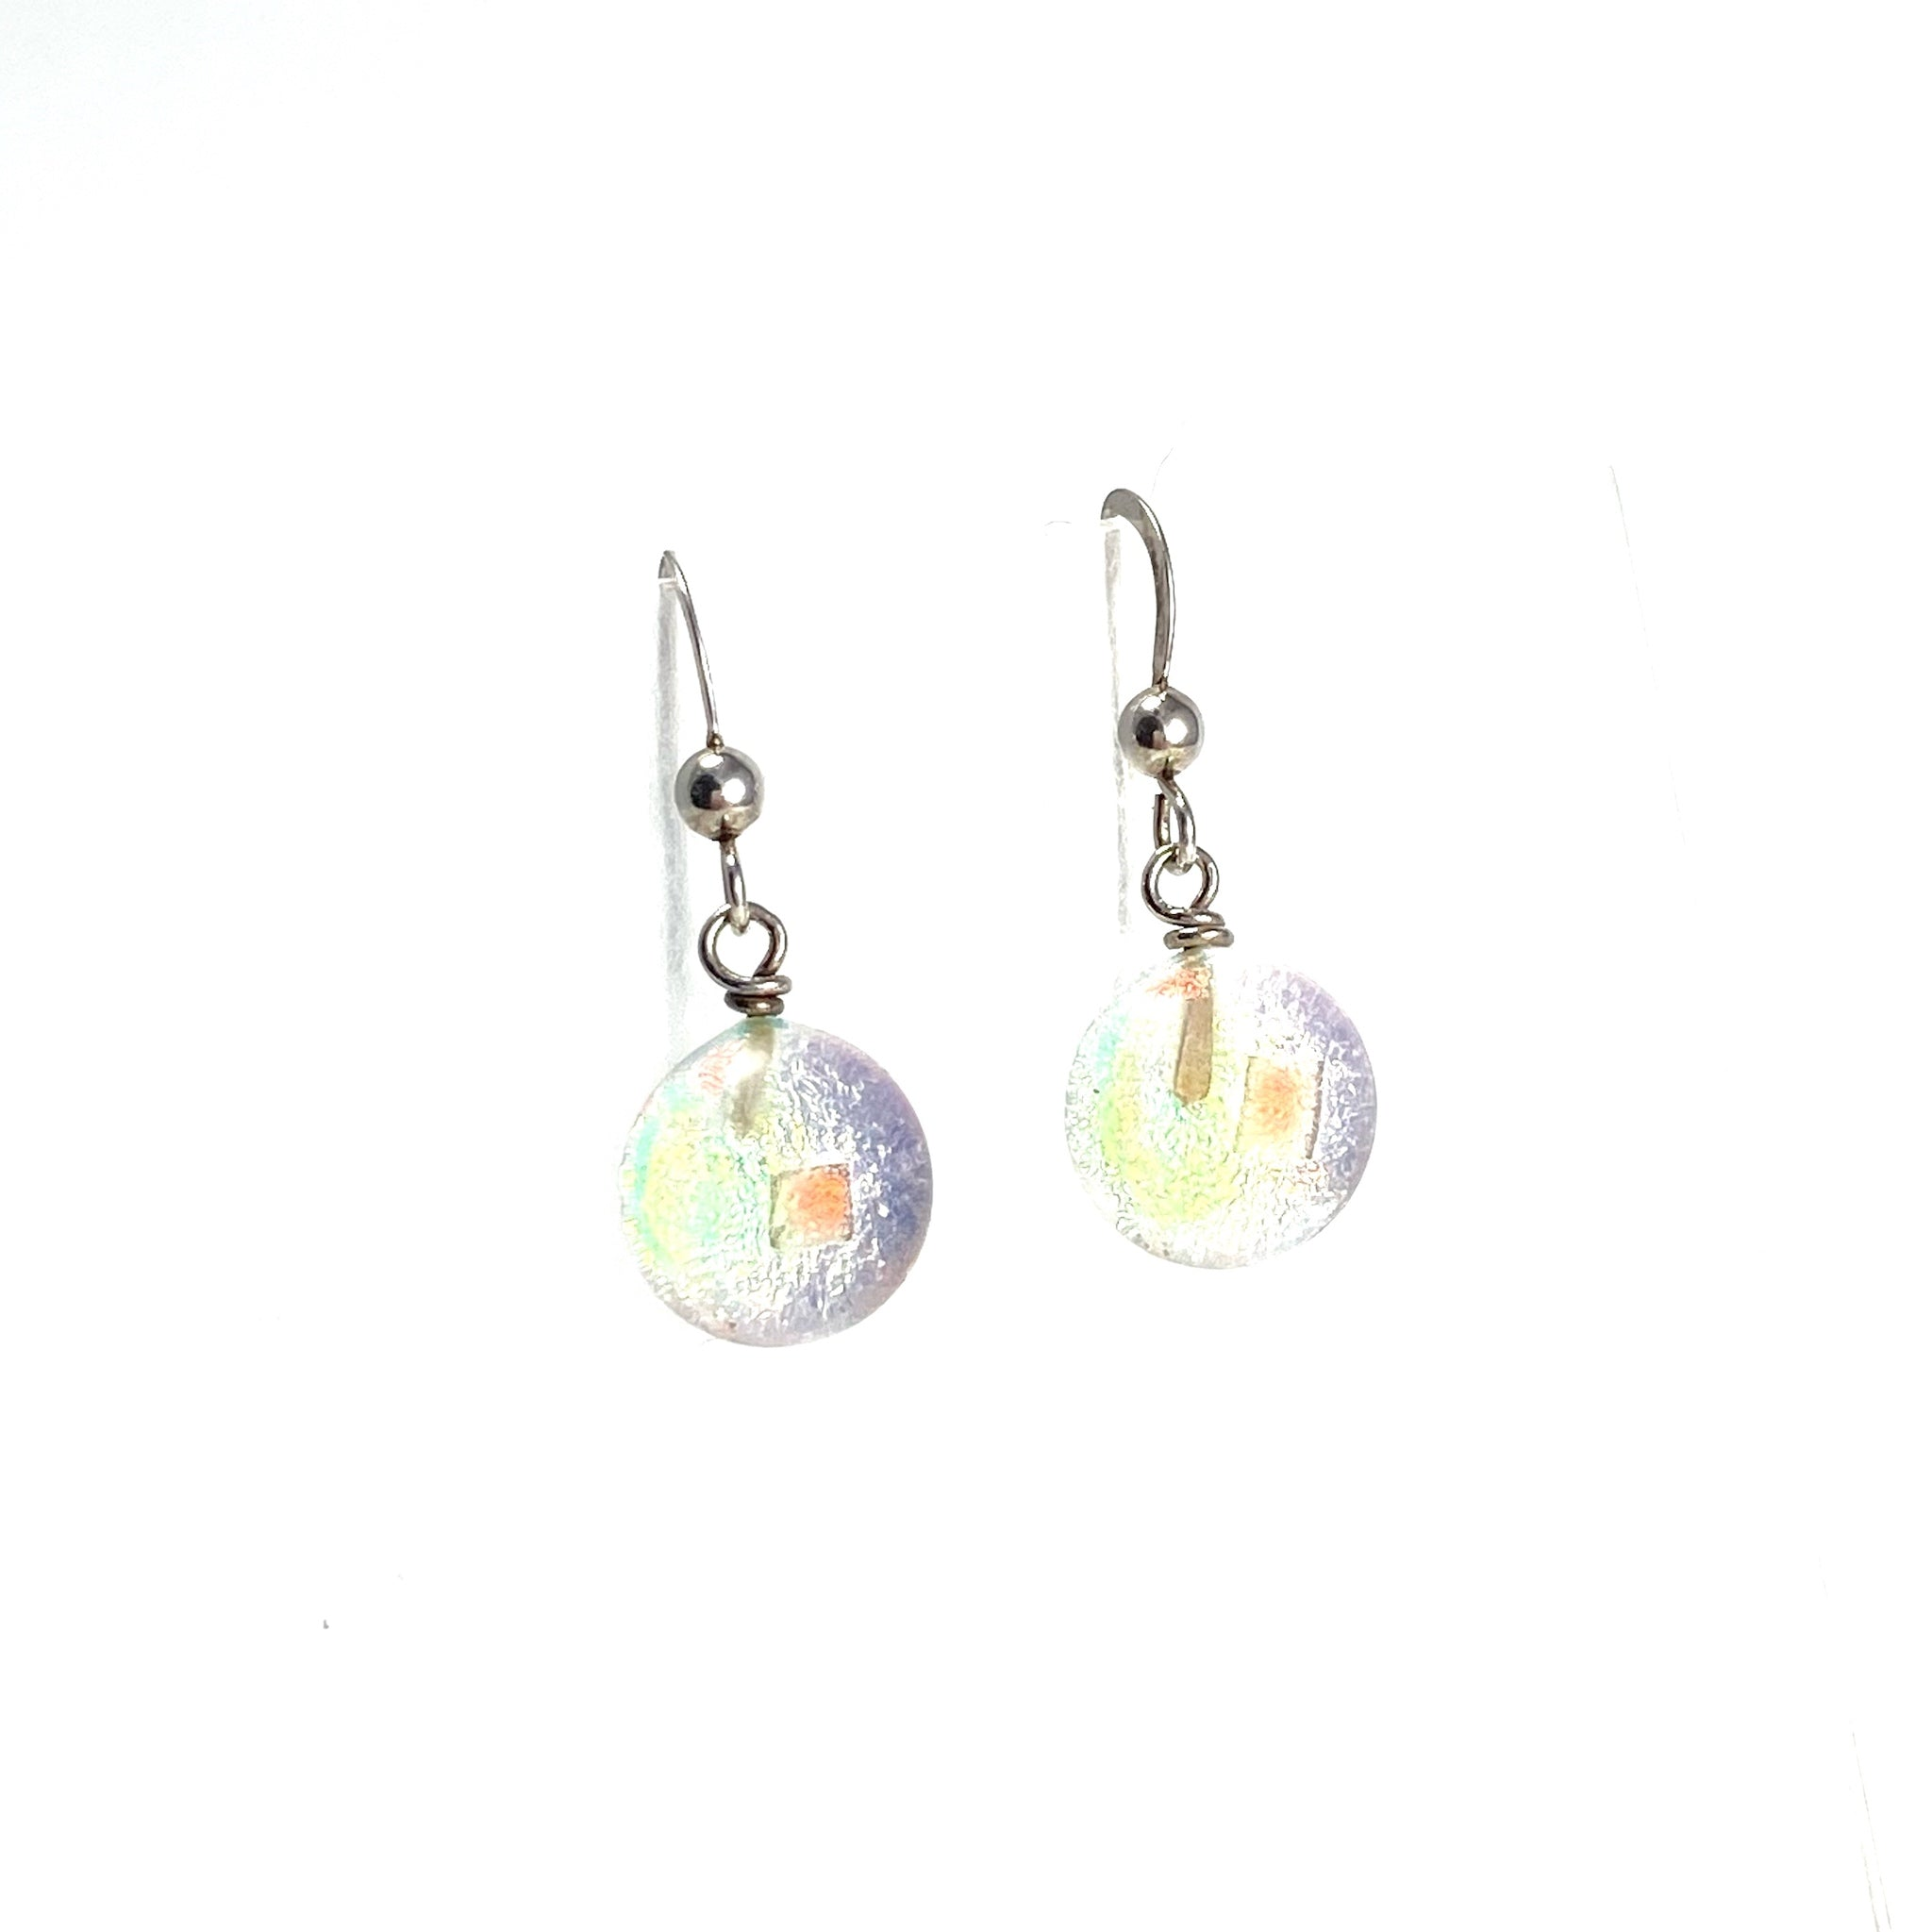 opal, space balls, sparkle, glass drops, earrings, fused glass, glass jewelry, glass and silver jewelry, handmade, handcrafted, American Craft, hand fabricated jewelry, hand fabricated jewellery, Athen, Georgia, colorful jewelry, sparkle, bullseye glass, dichroic glass, art jewelry